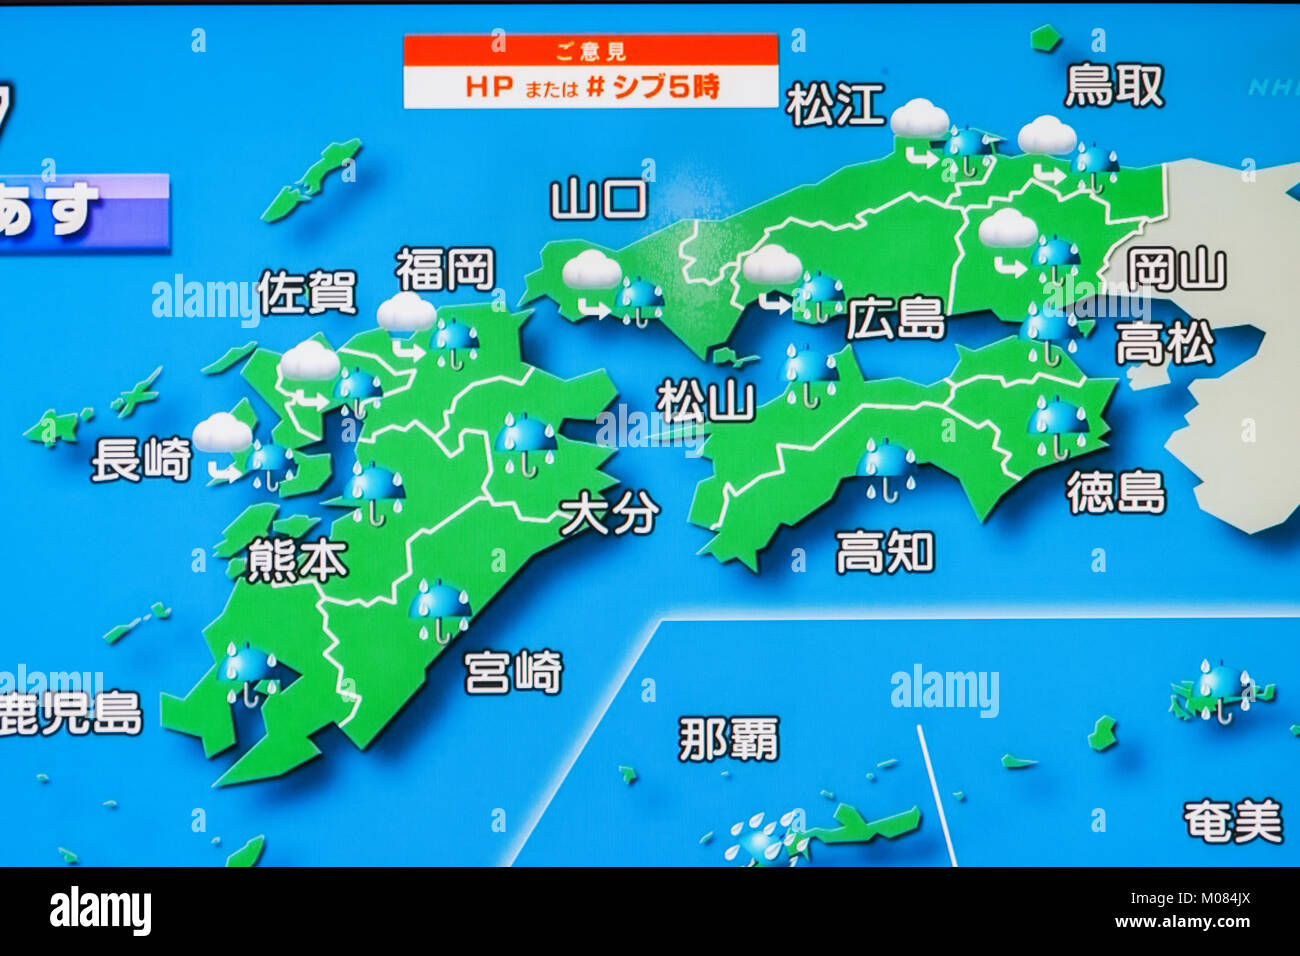 Japan Japanese Tv Weather Forecast For Rain And Cloud Stock Photo